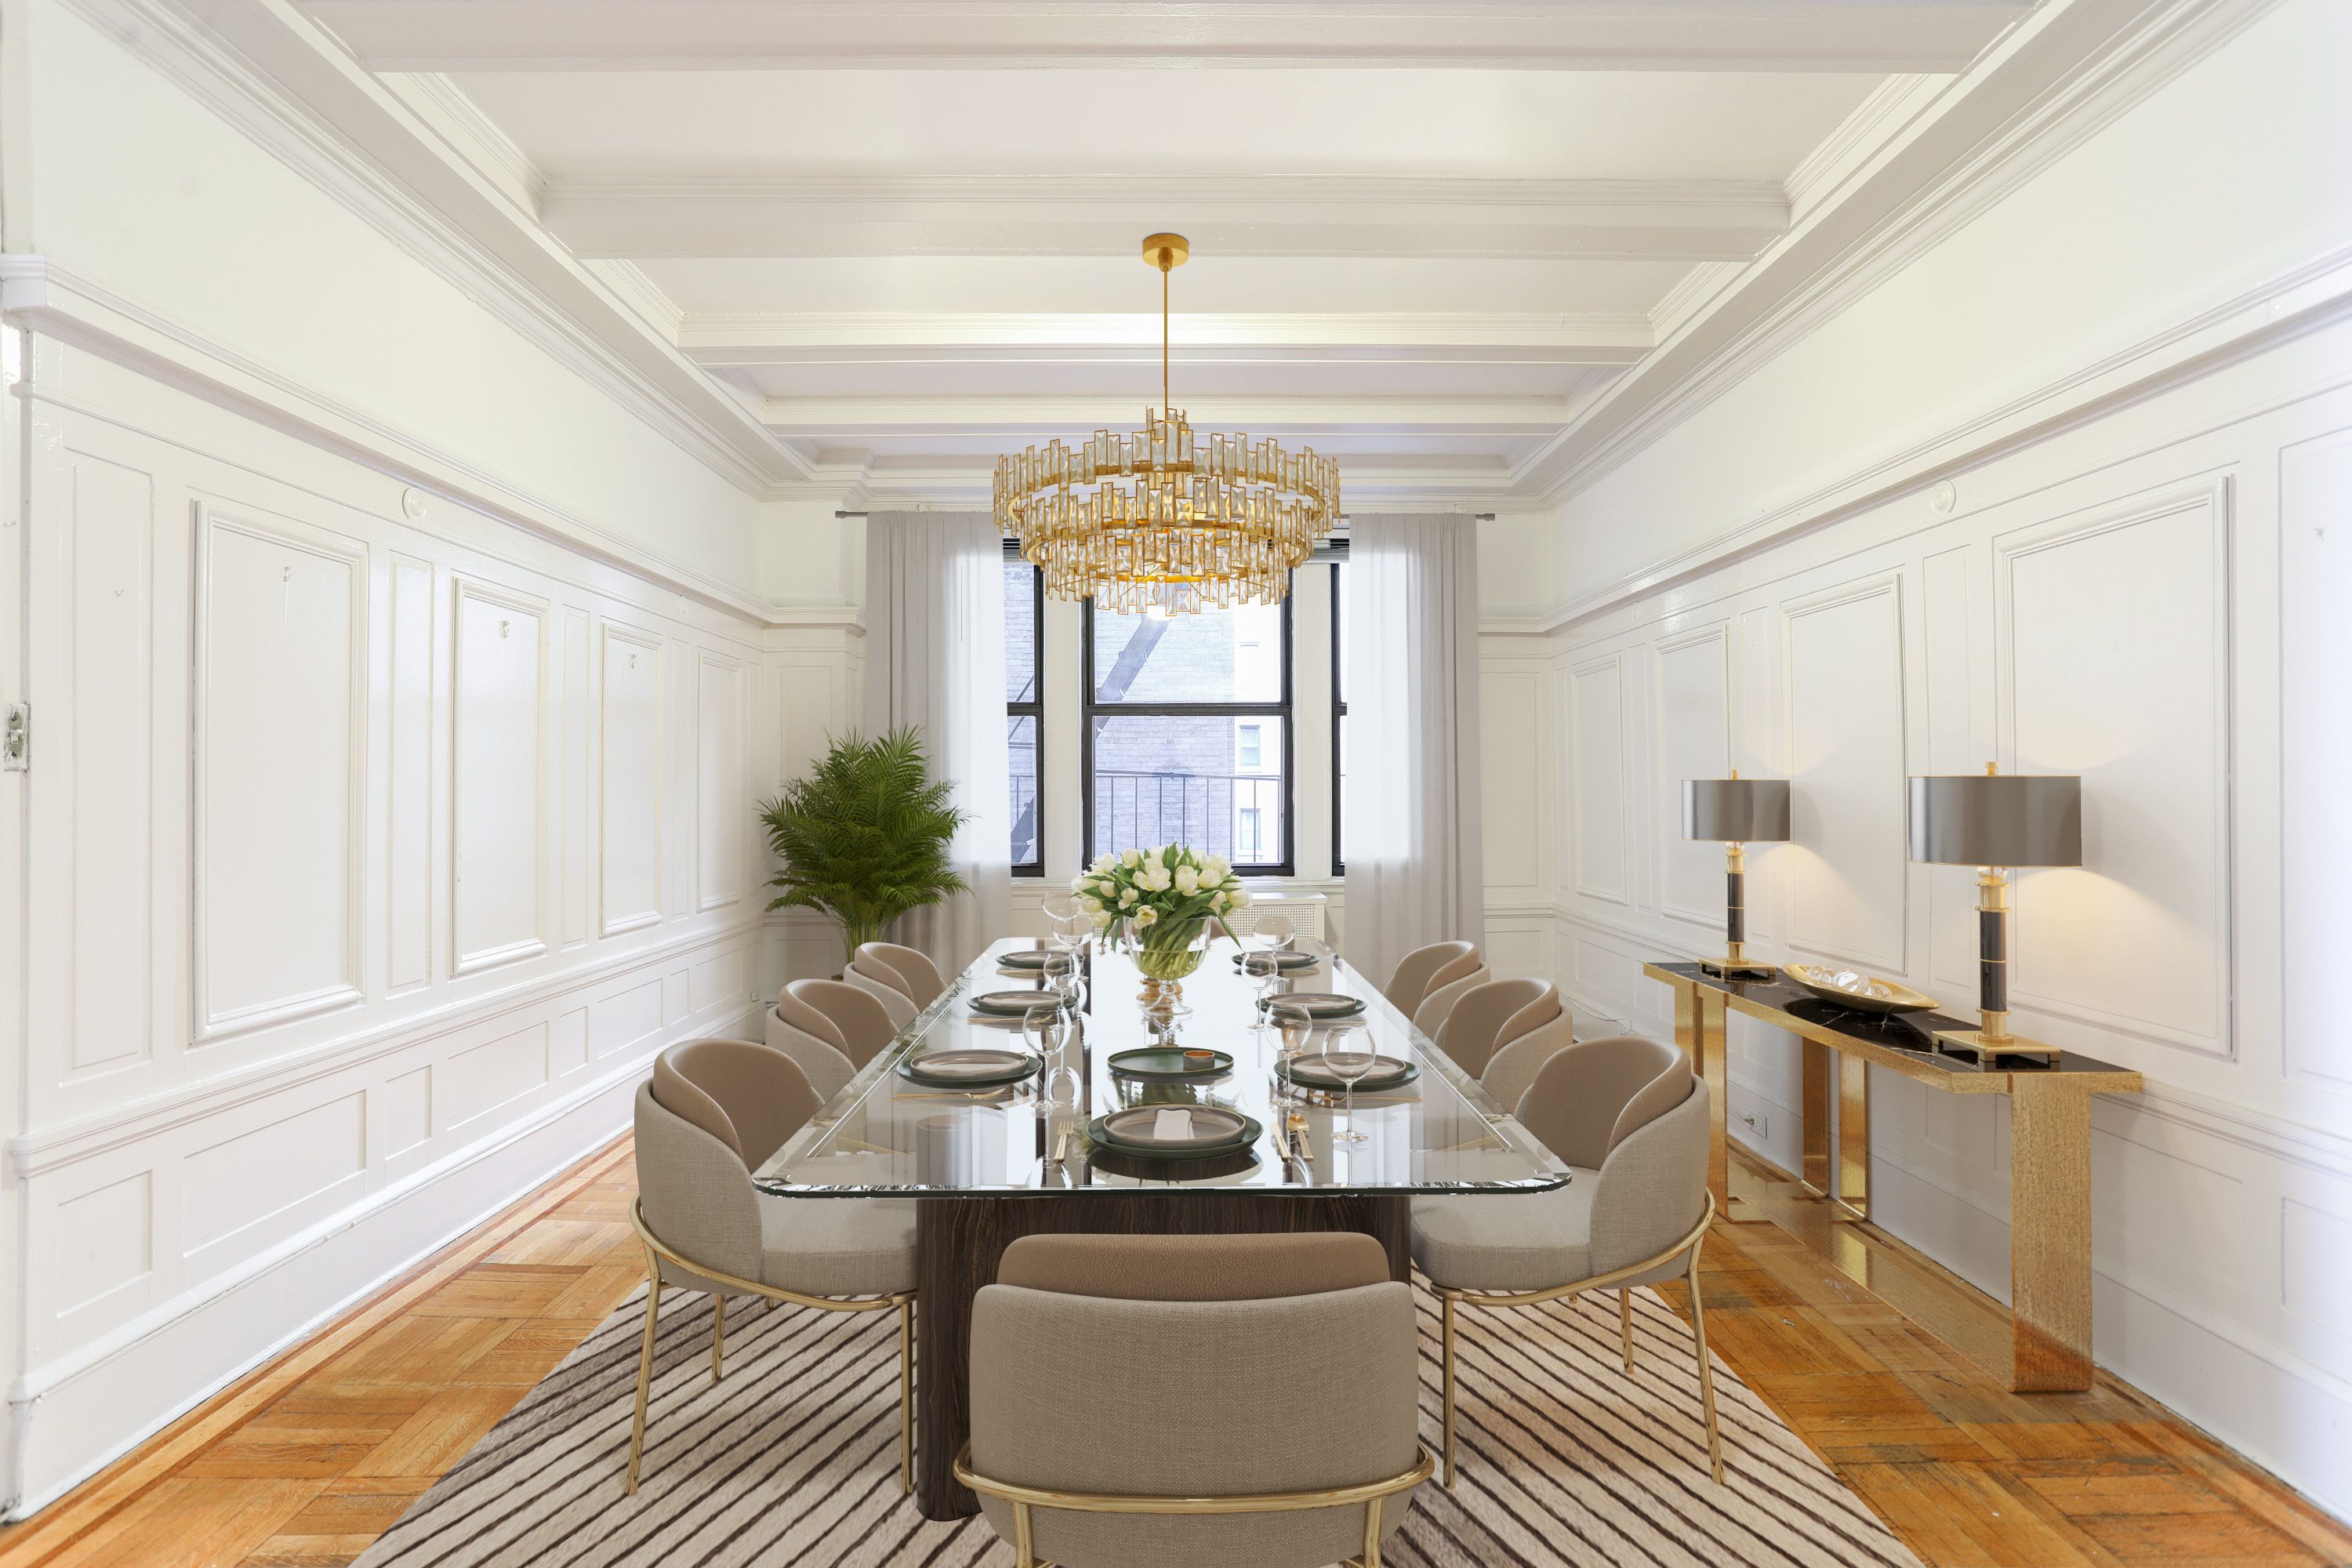 Formal separate dining room with French doors